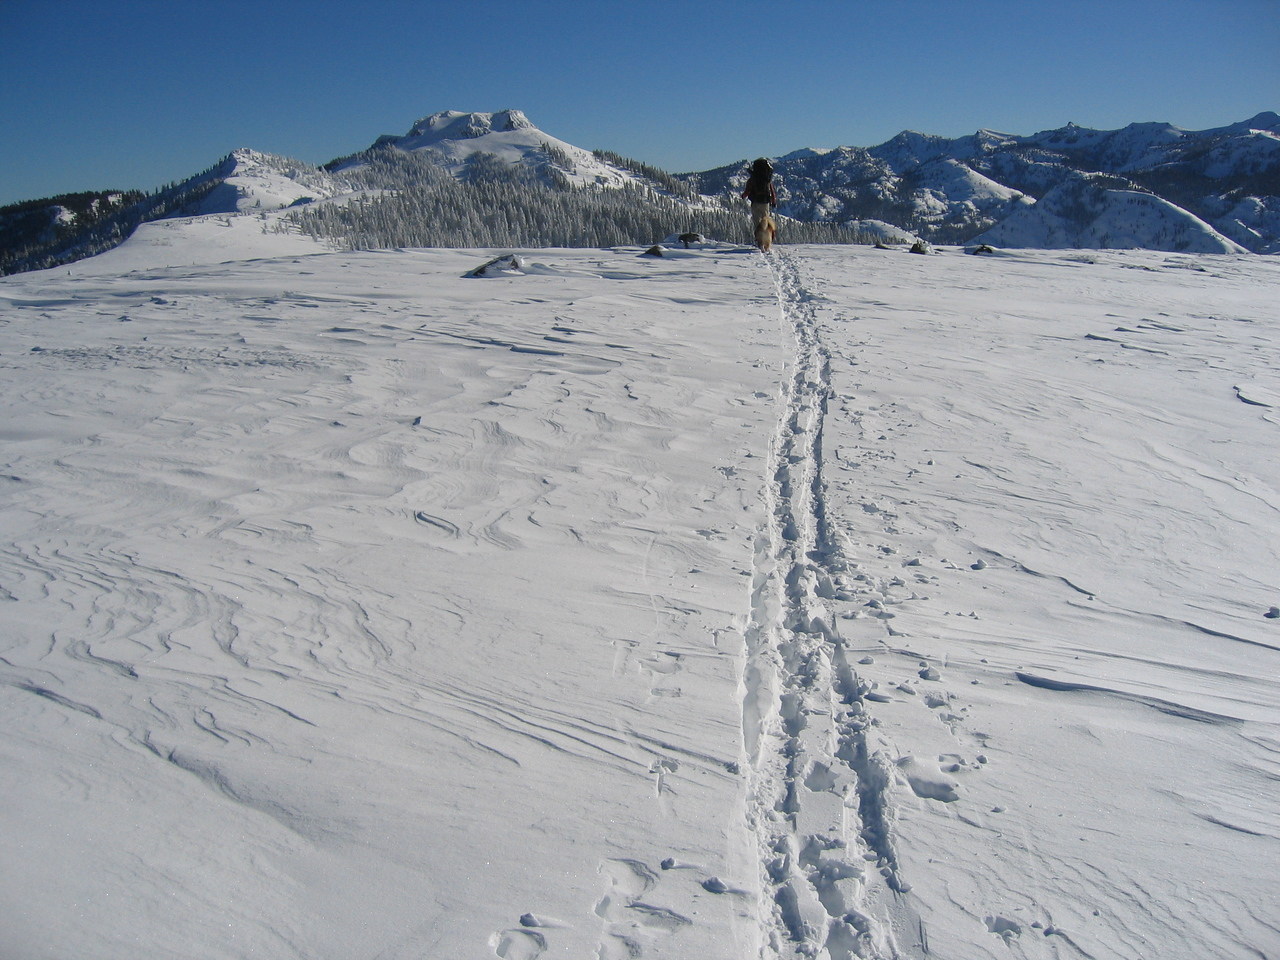 Matty making tracks out to Benson with Tinker Knob in the background.